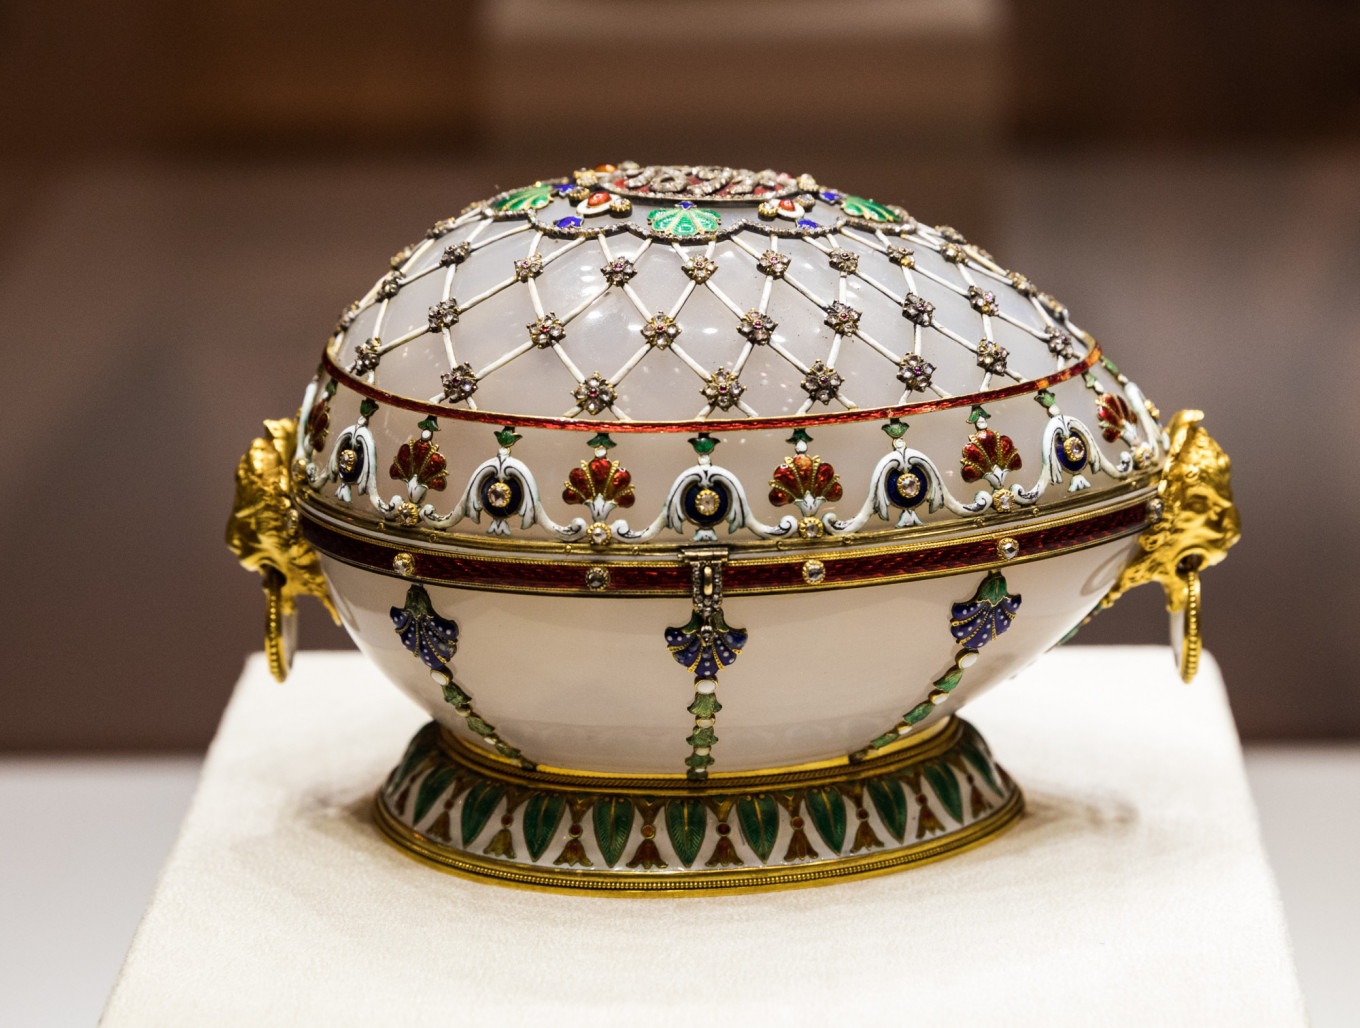 Renaissance Egg, 1894, presented by Emperor Alexander III to his wife, Empress Maria Link of Times Foundation